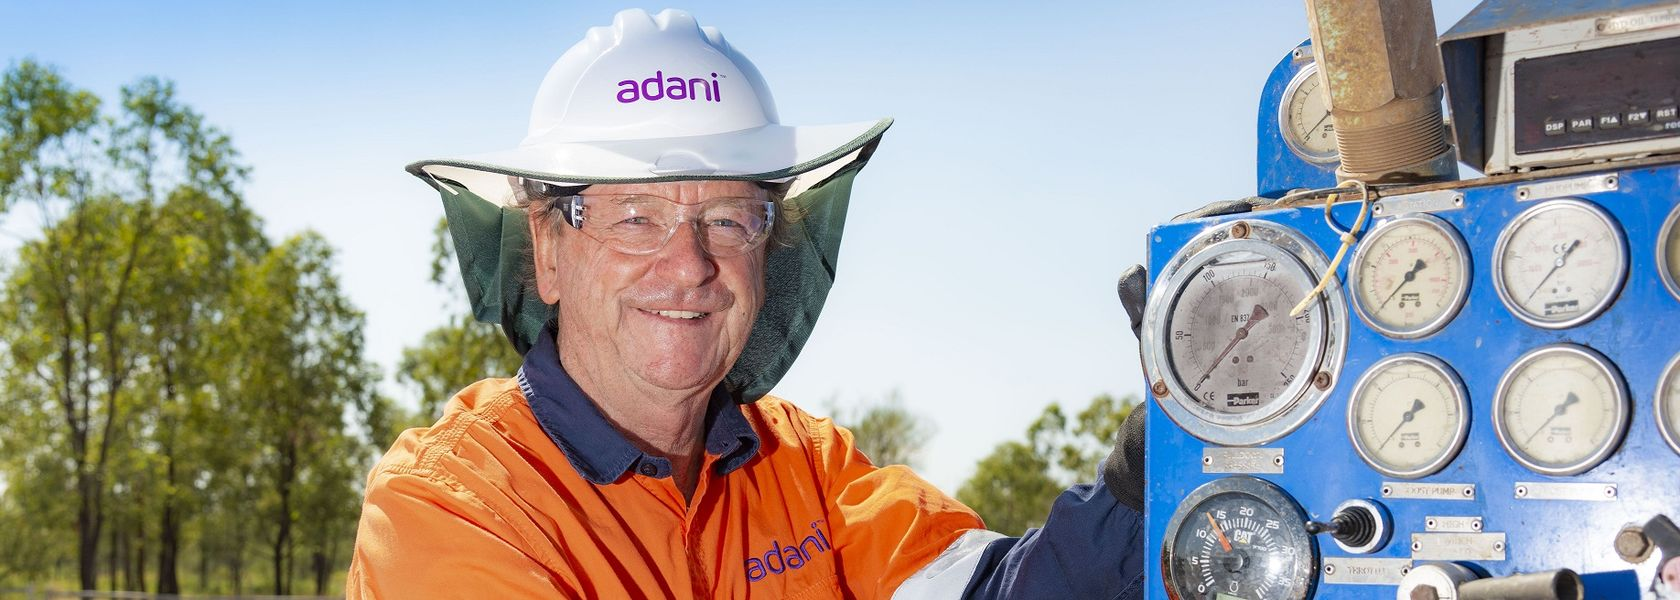 Adani employment registration grows to 14,500